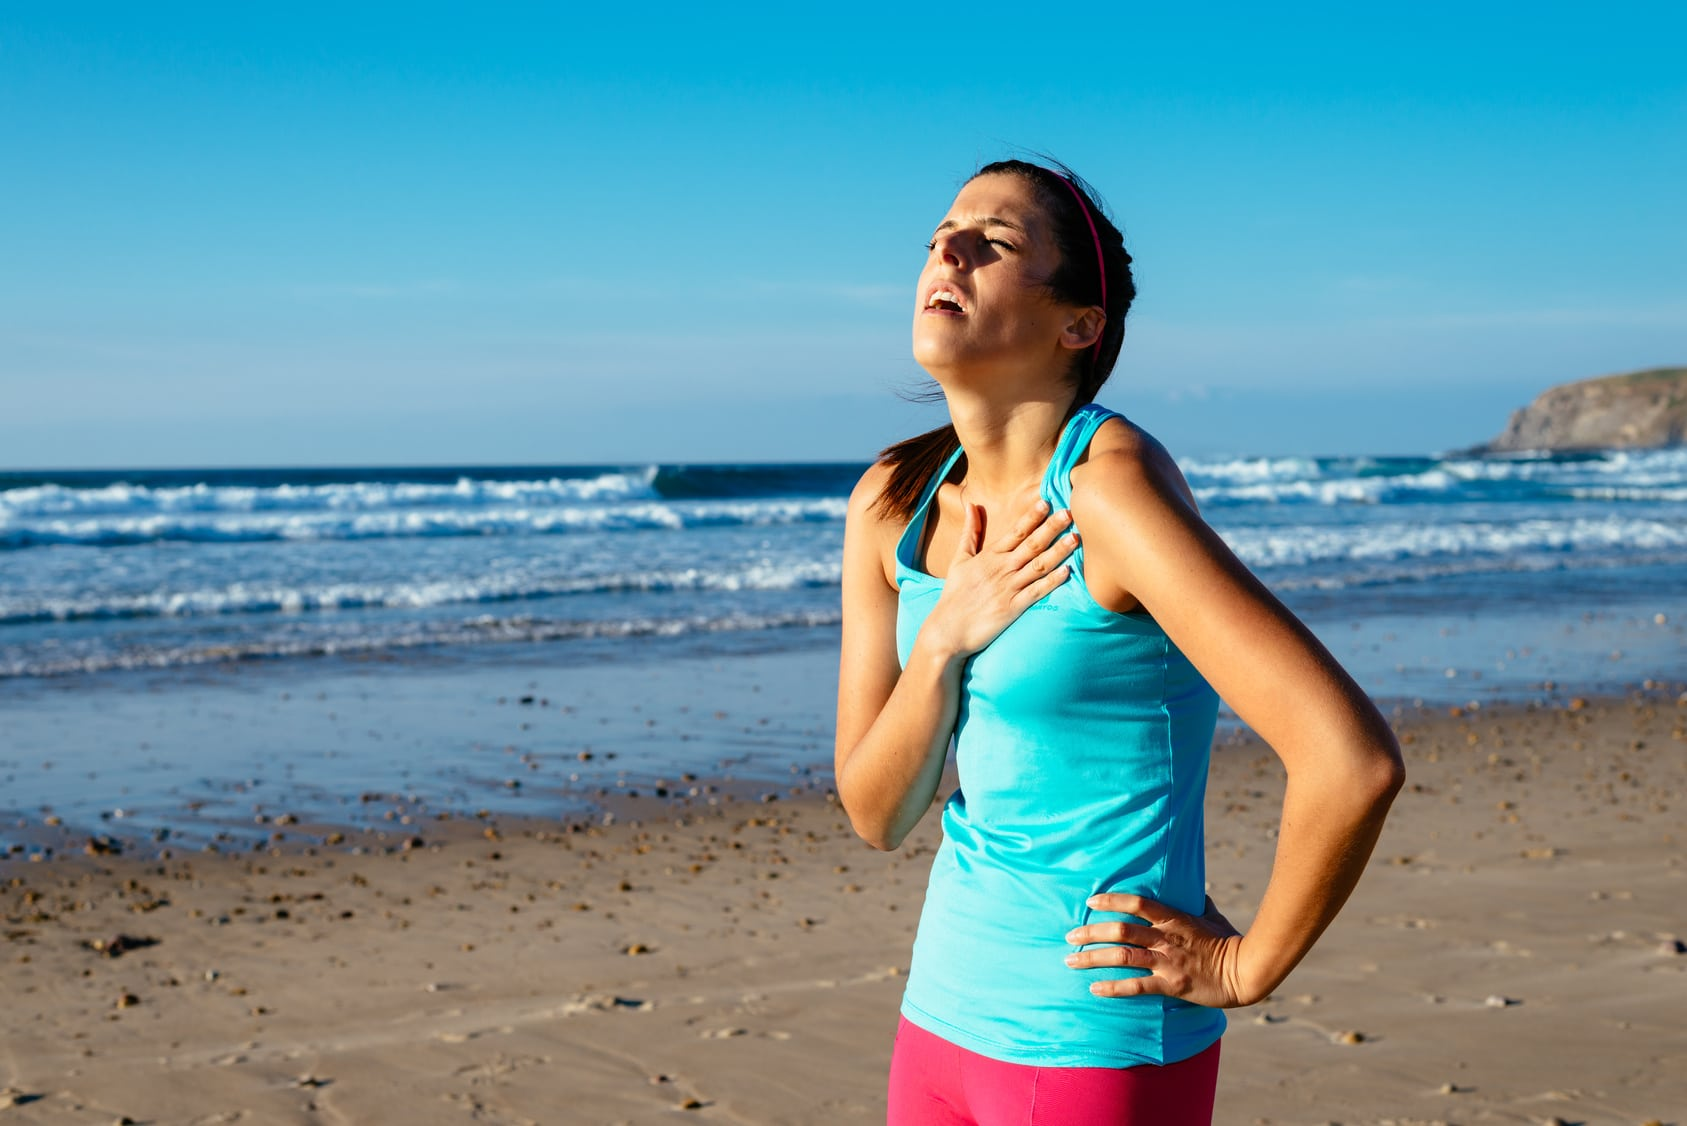 Exhausted female runner suffering painful angina pectoris or asthma breathing problems after training hard on summer. Running overtraining consequence.